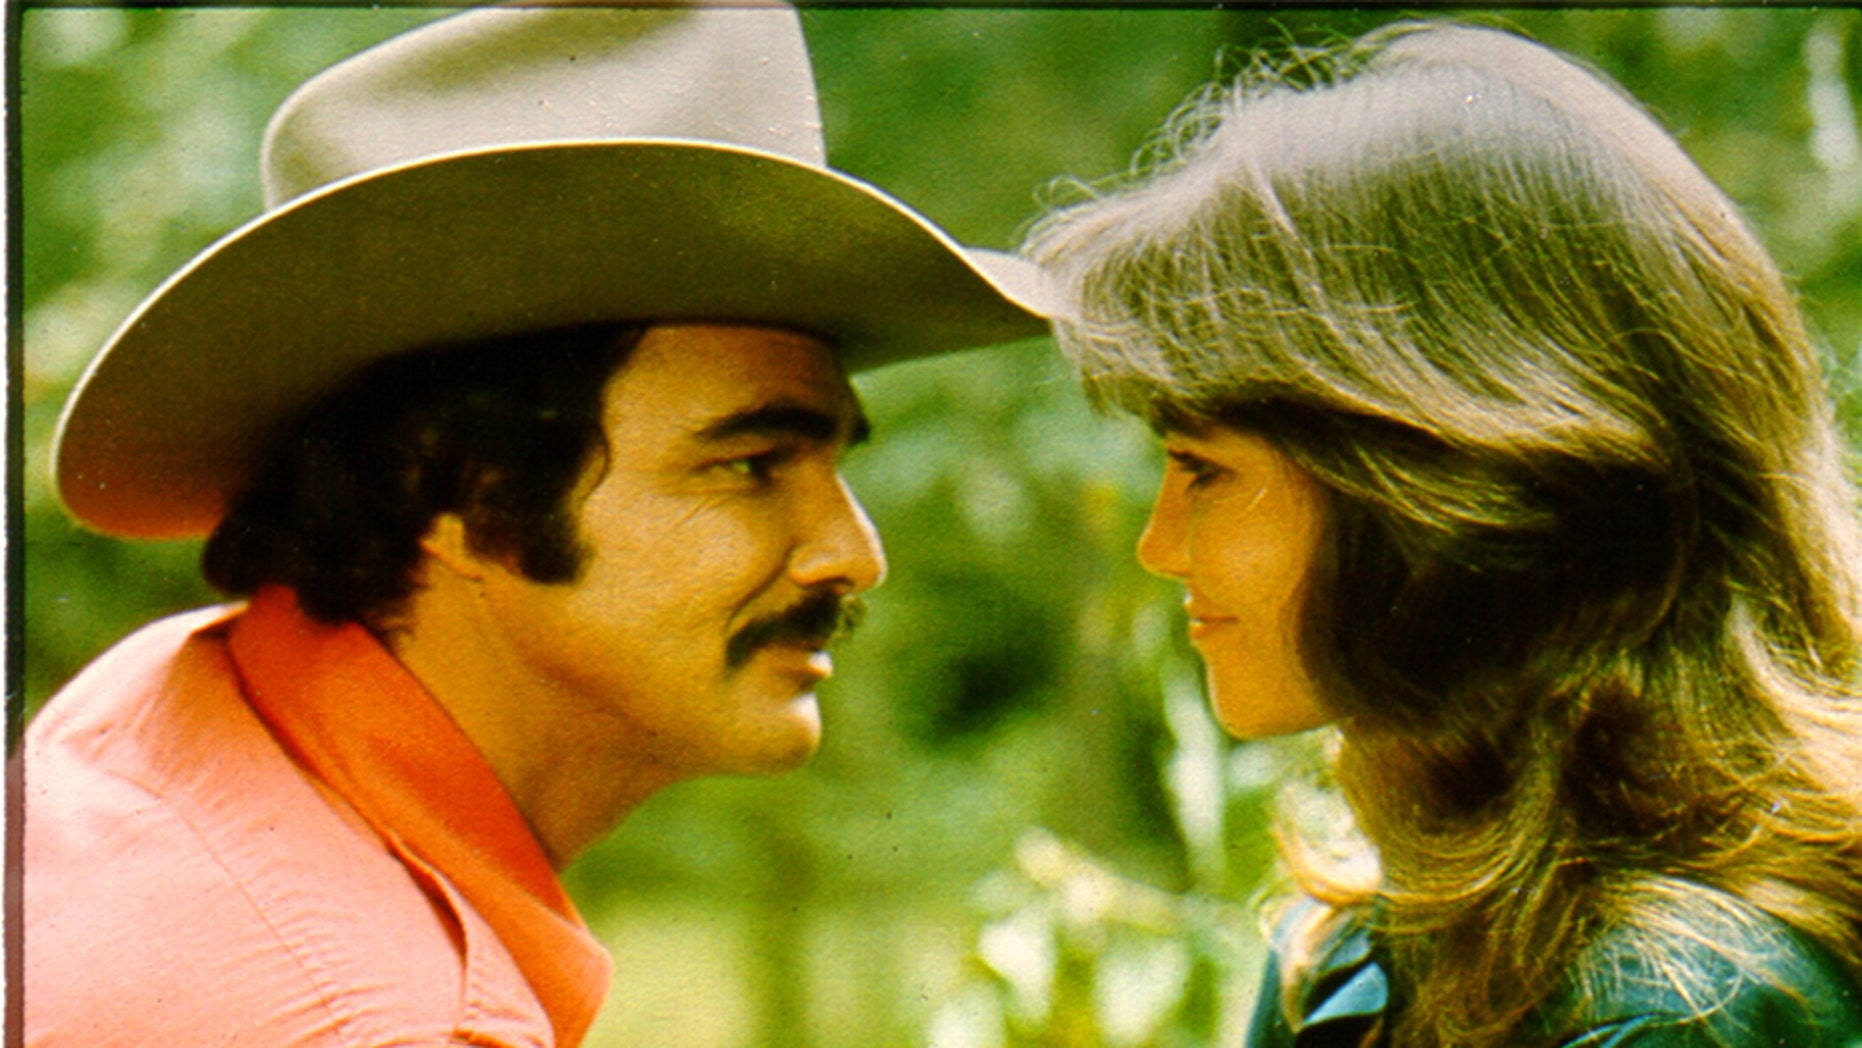 """Burt Reynolds and Sally Field filming 1977's """"Smokey and the Bandit."""""""